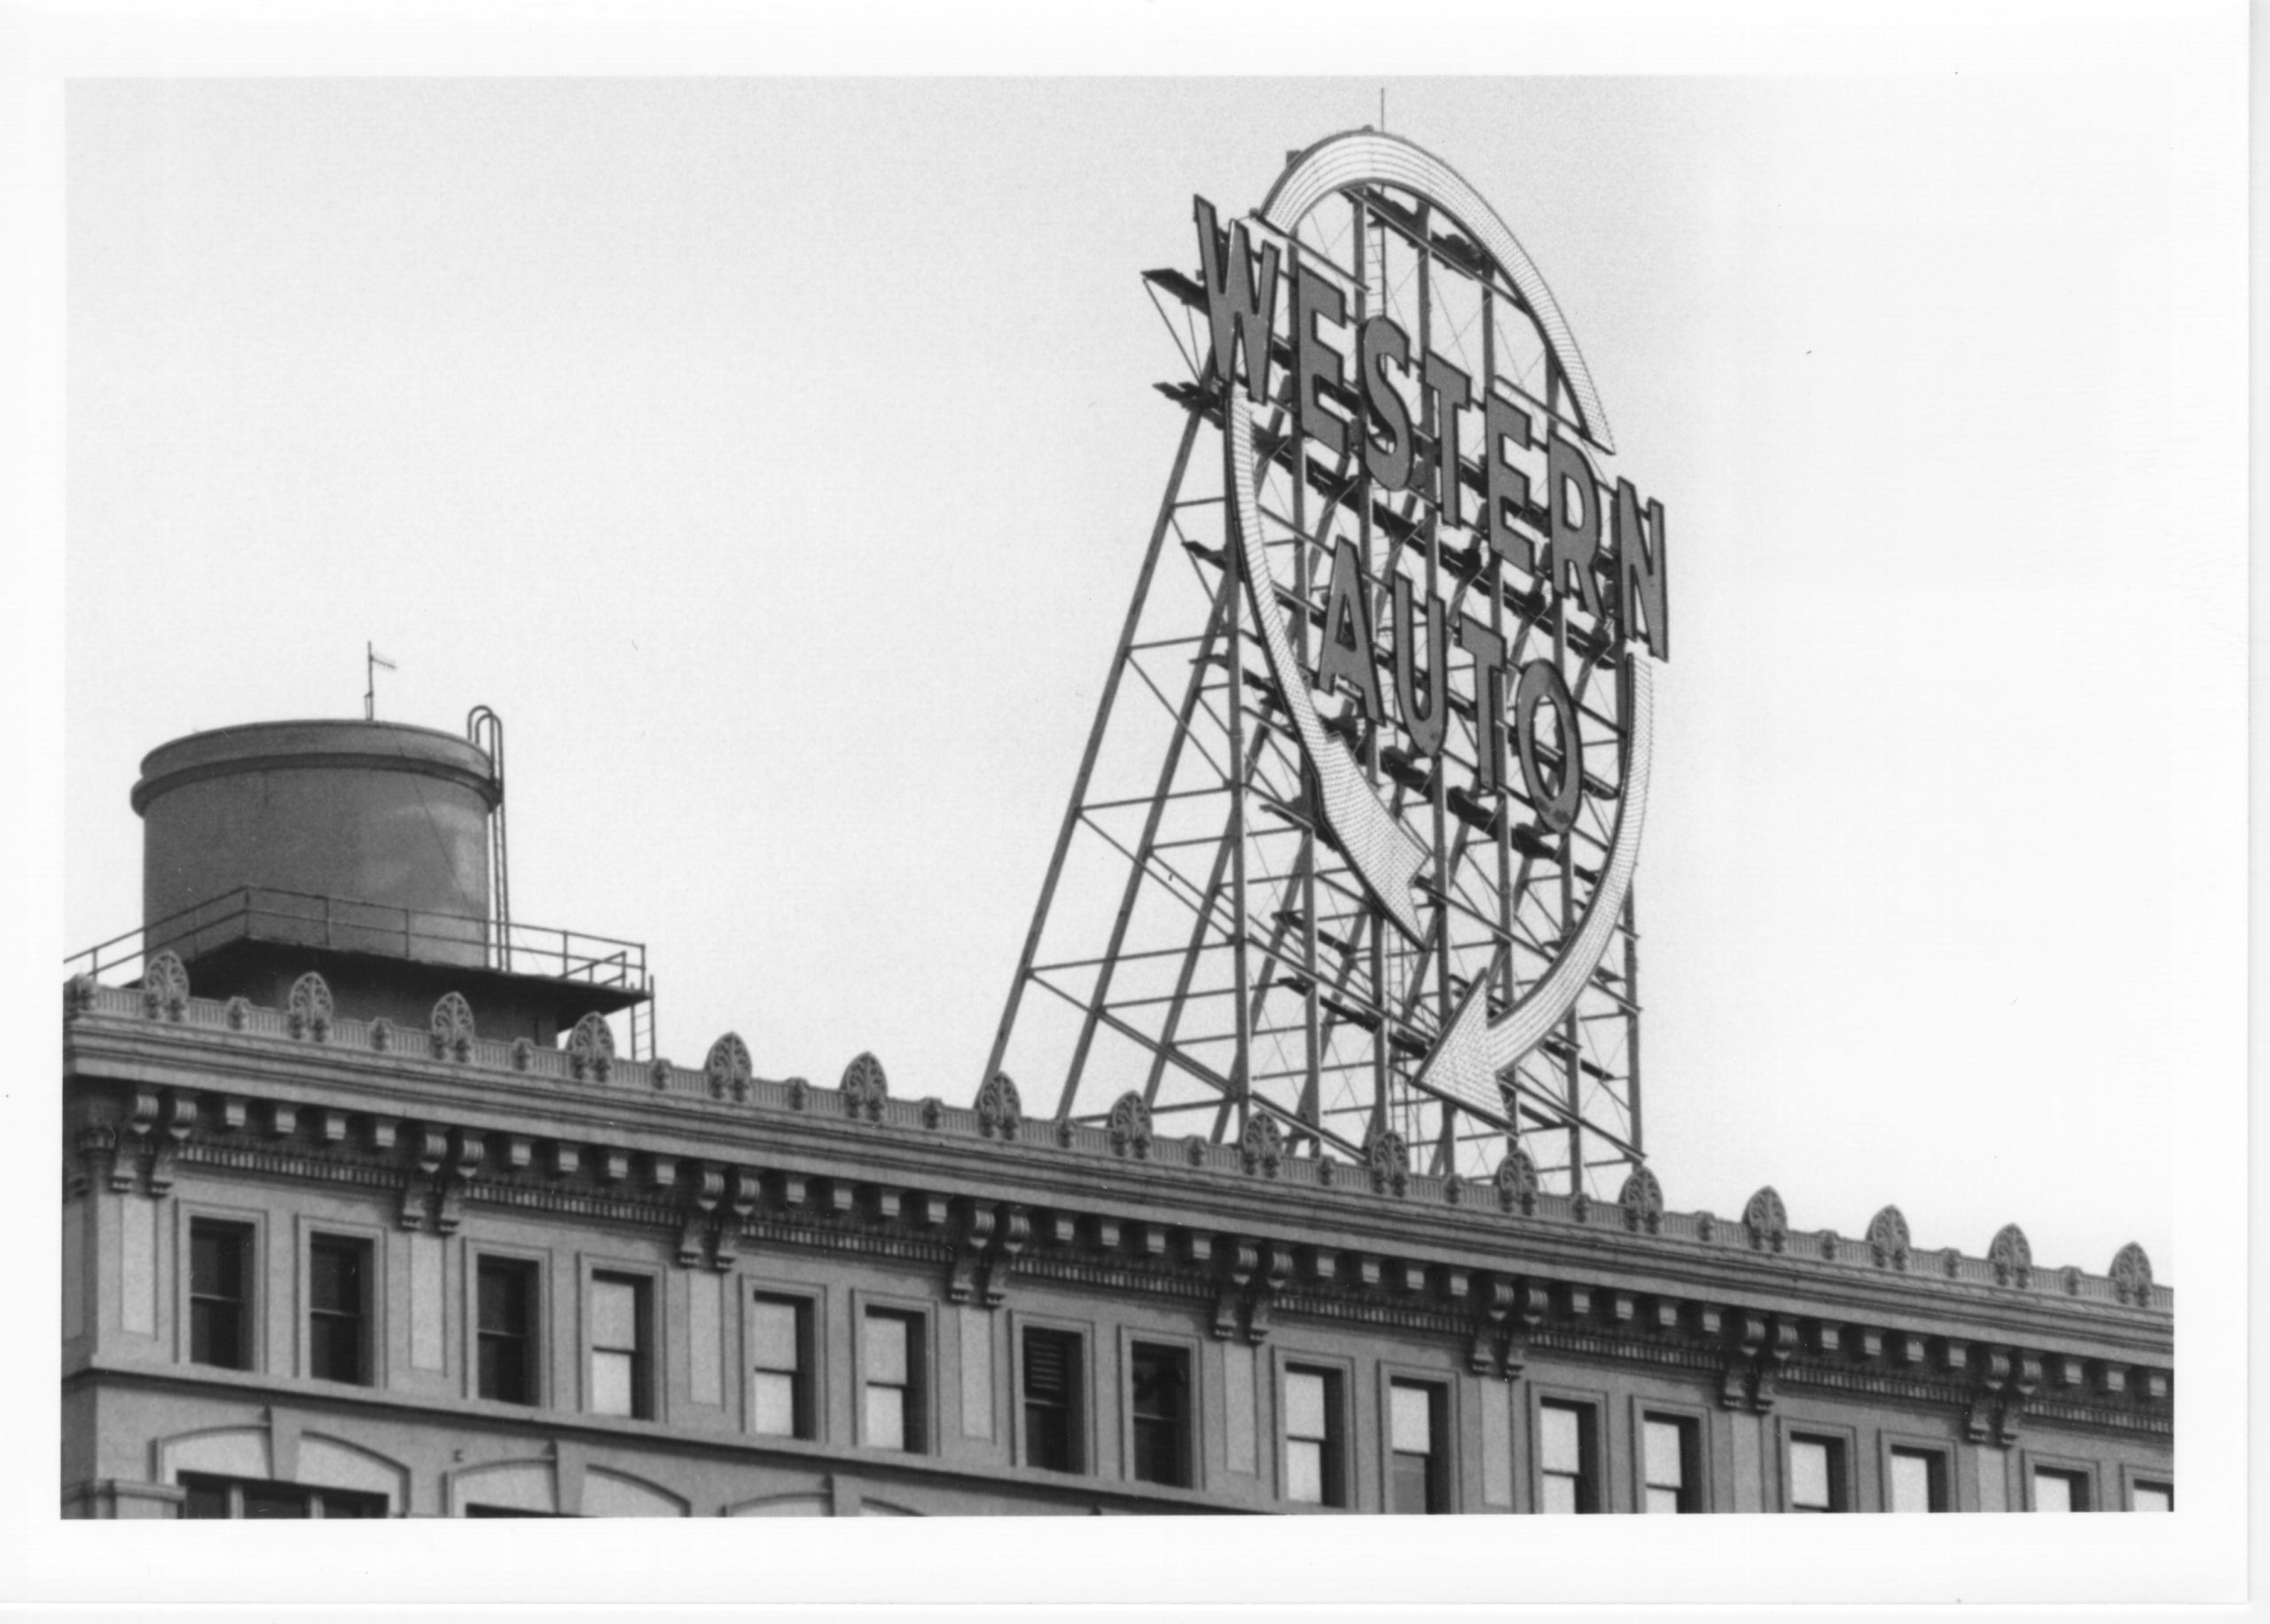 Western Auto sign in 1991. (Kansas City Public Library | Missouri Valley Special Collections)